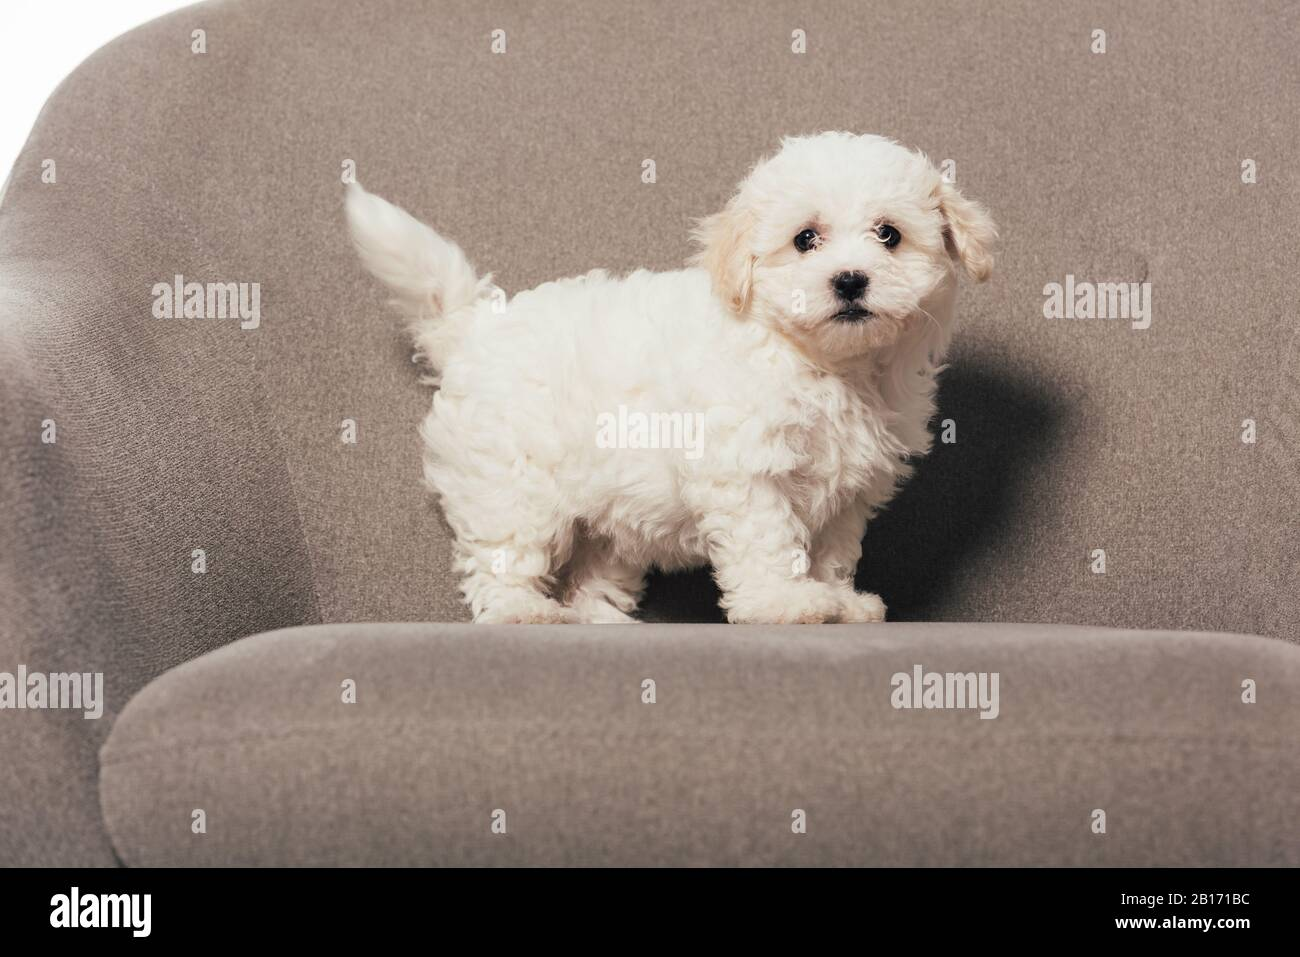 Cute And White Havanese Puppy Standing On Armchair Stock Photo Alamy